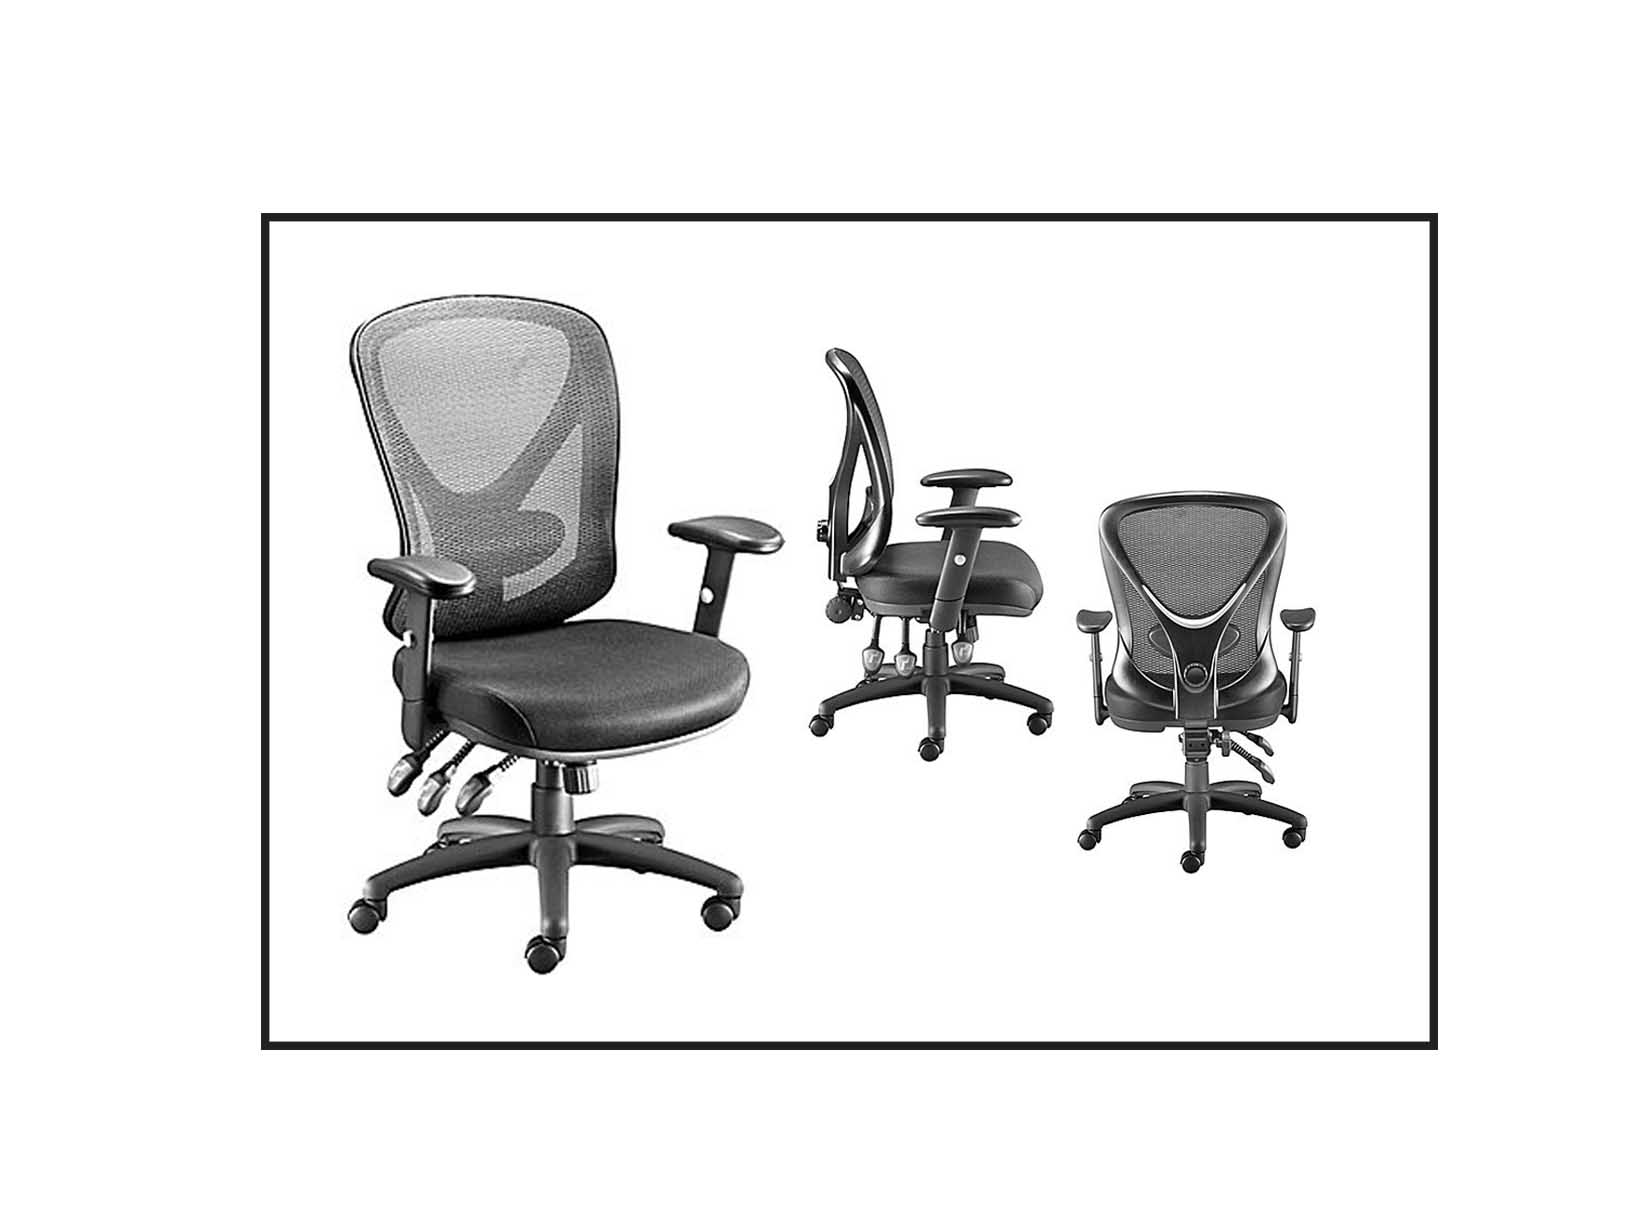 staples turcotte chair brown recliner covers target australia luxura high back office for 69 99 at carder mesh black